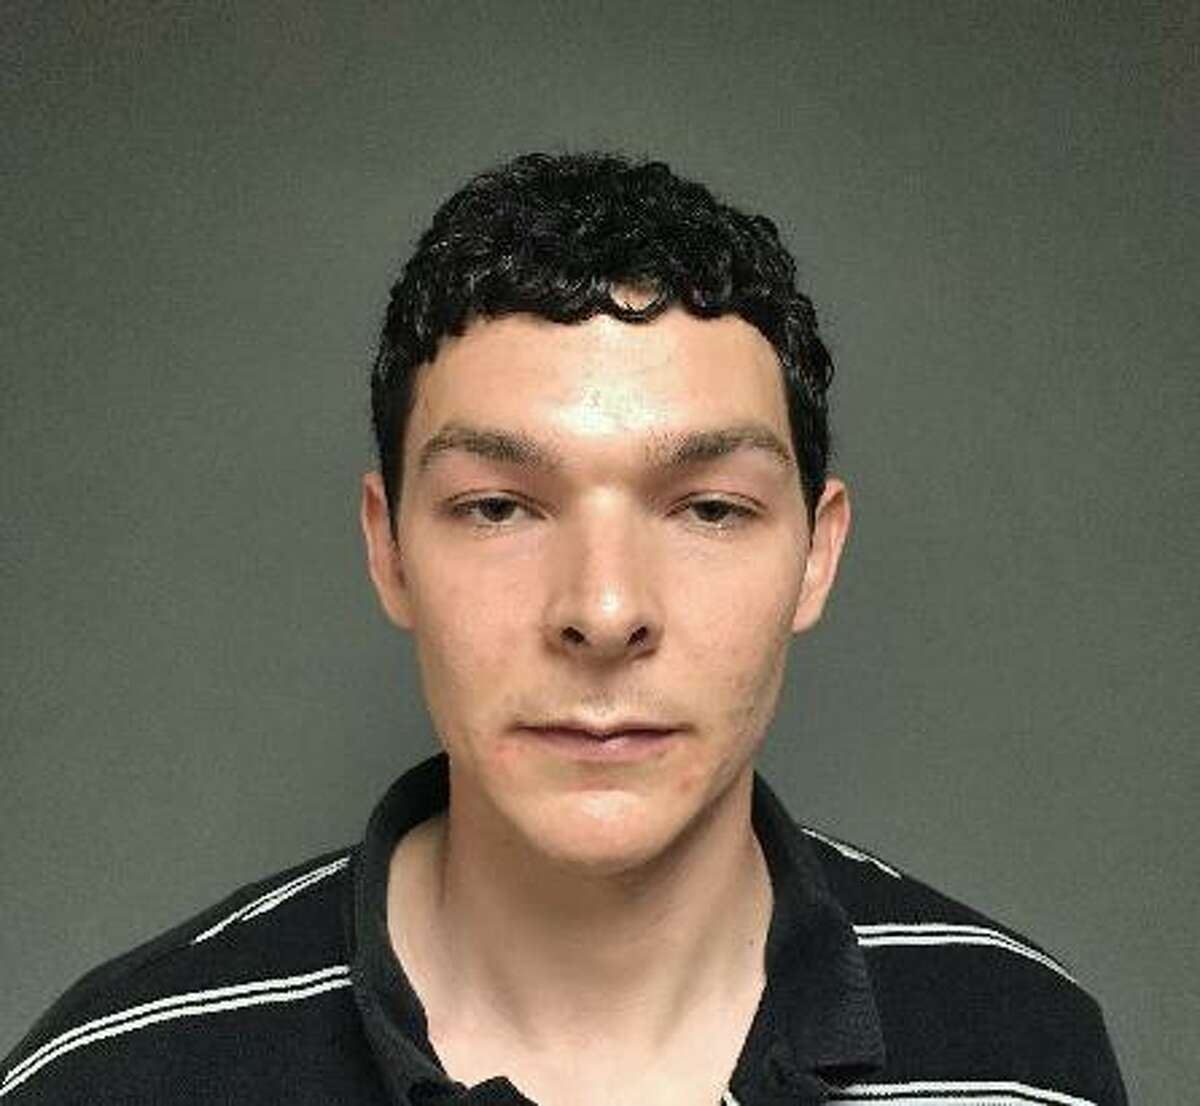 Nicholas Reich, of Trumbull, was charged with operating under the influence, evading responsibility, and failure to drive in the proper lane on June 23, 2017, by Fairfield Police.